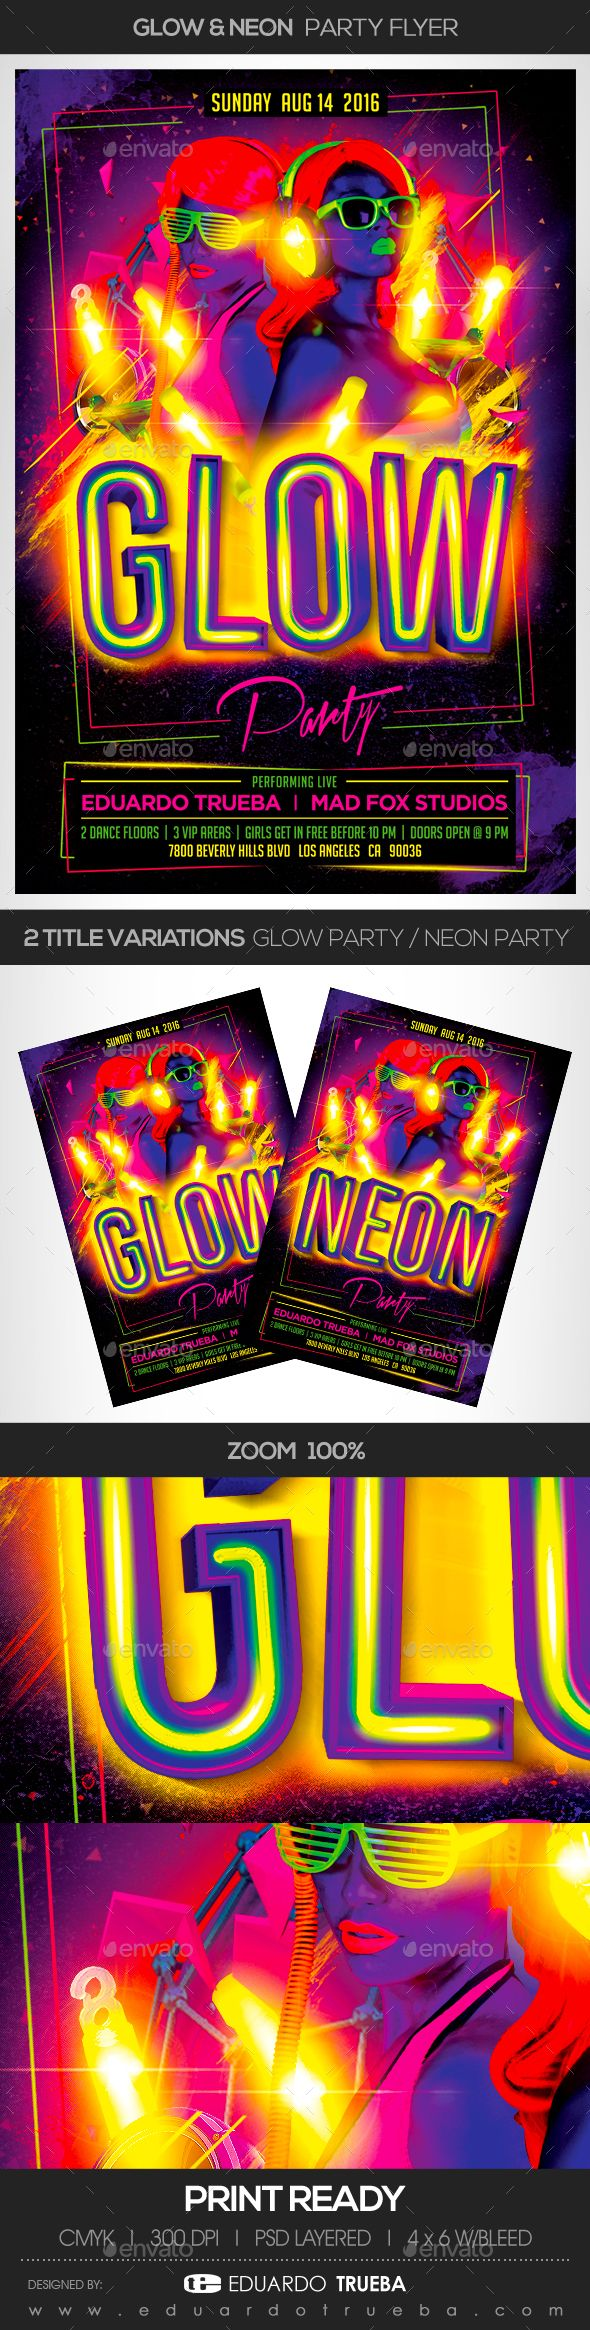 Pin by best Graphic Design on Flyer Templates Neon party